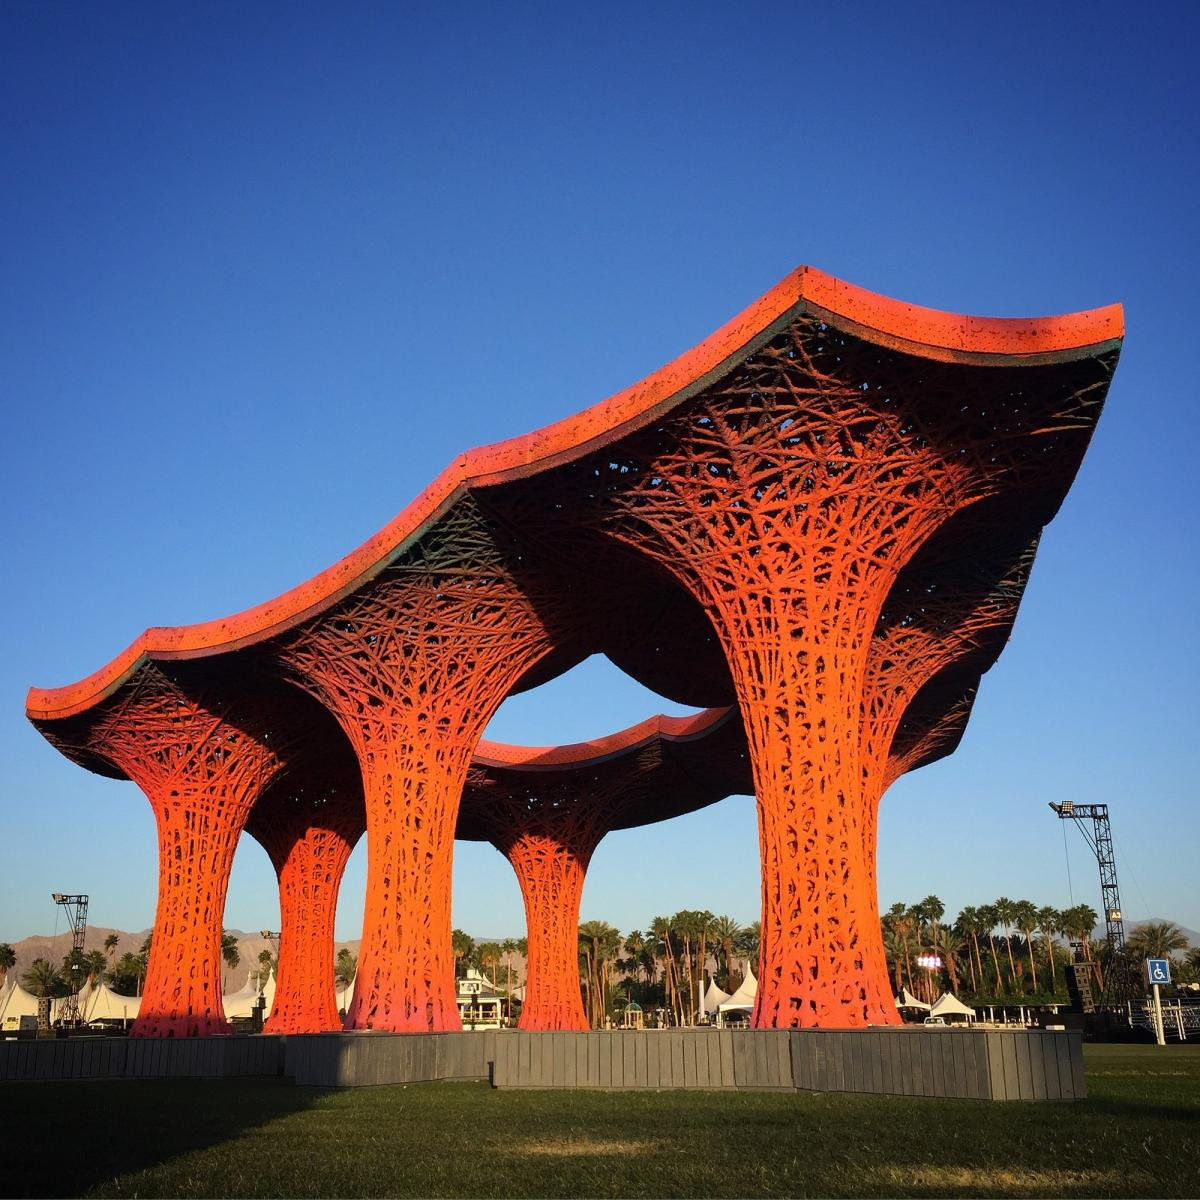 Coachella Music Festival in 2015 flaunted a pavilion built using over a tonne of paper pulp.